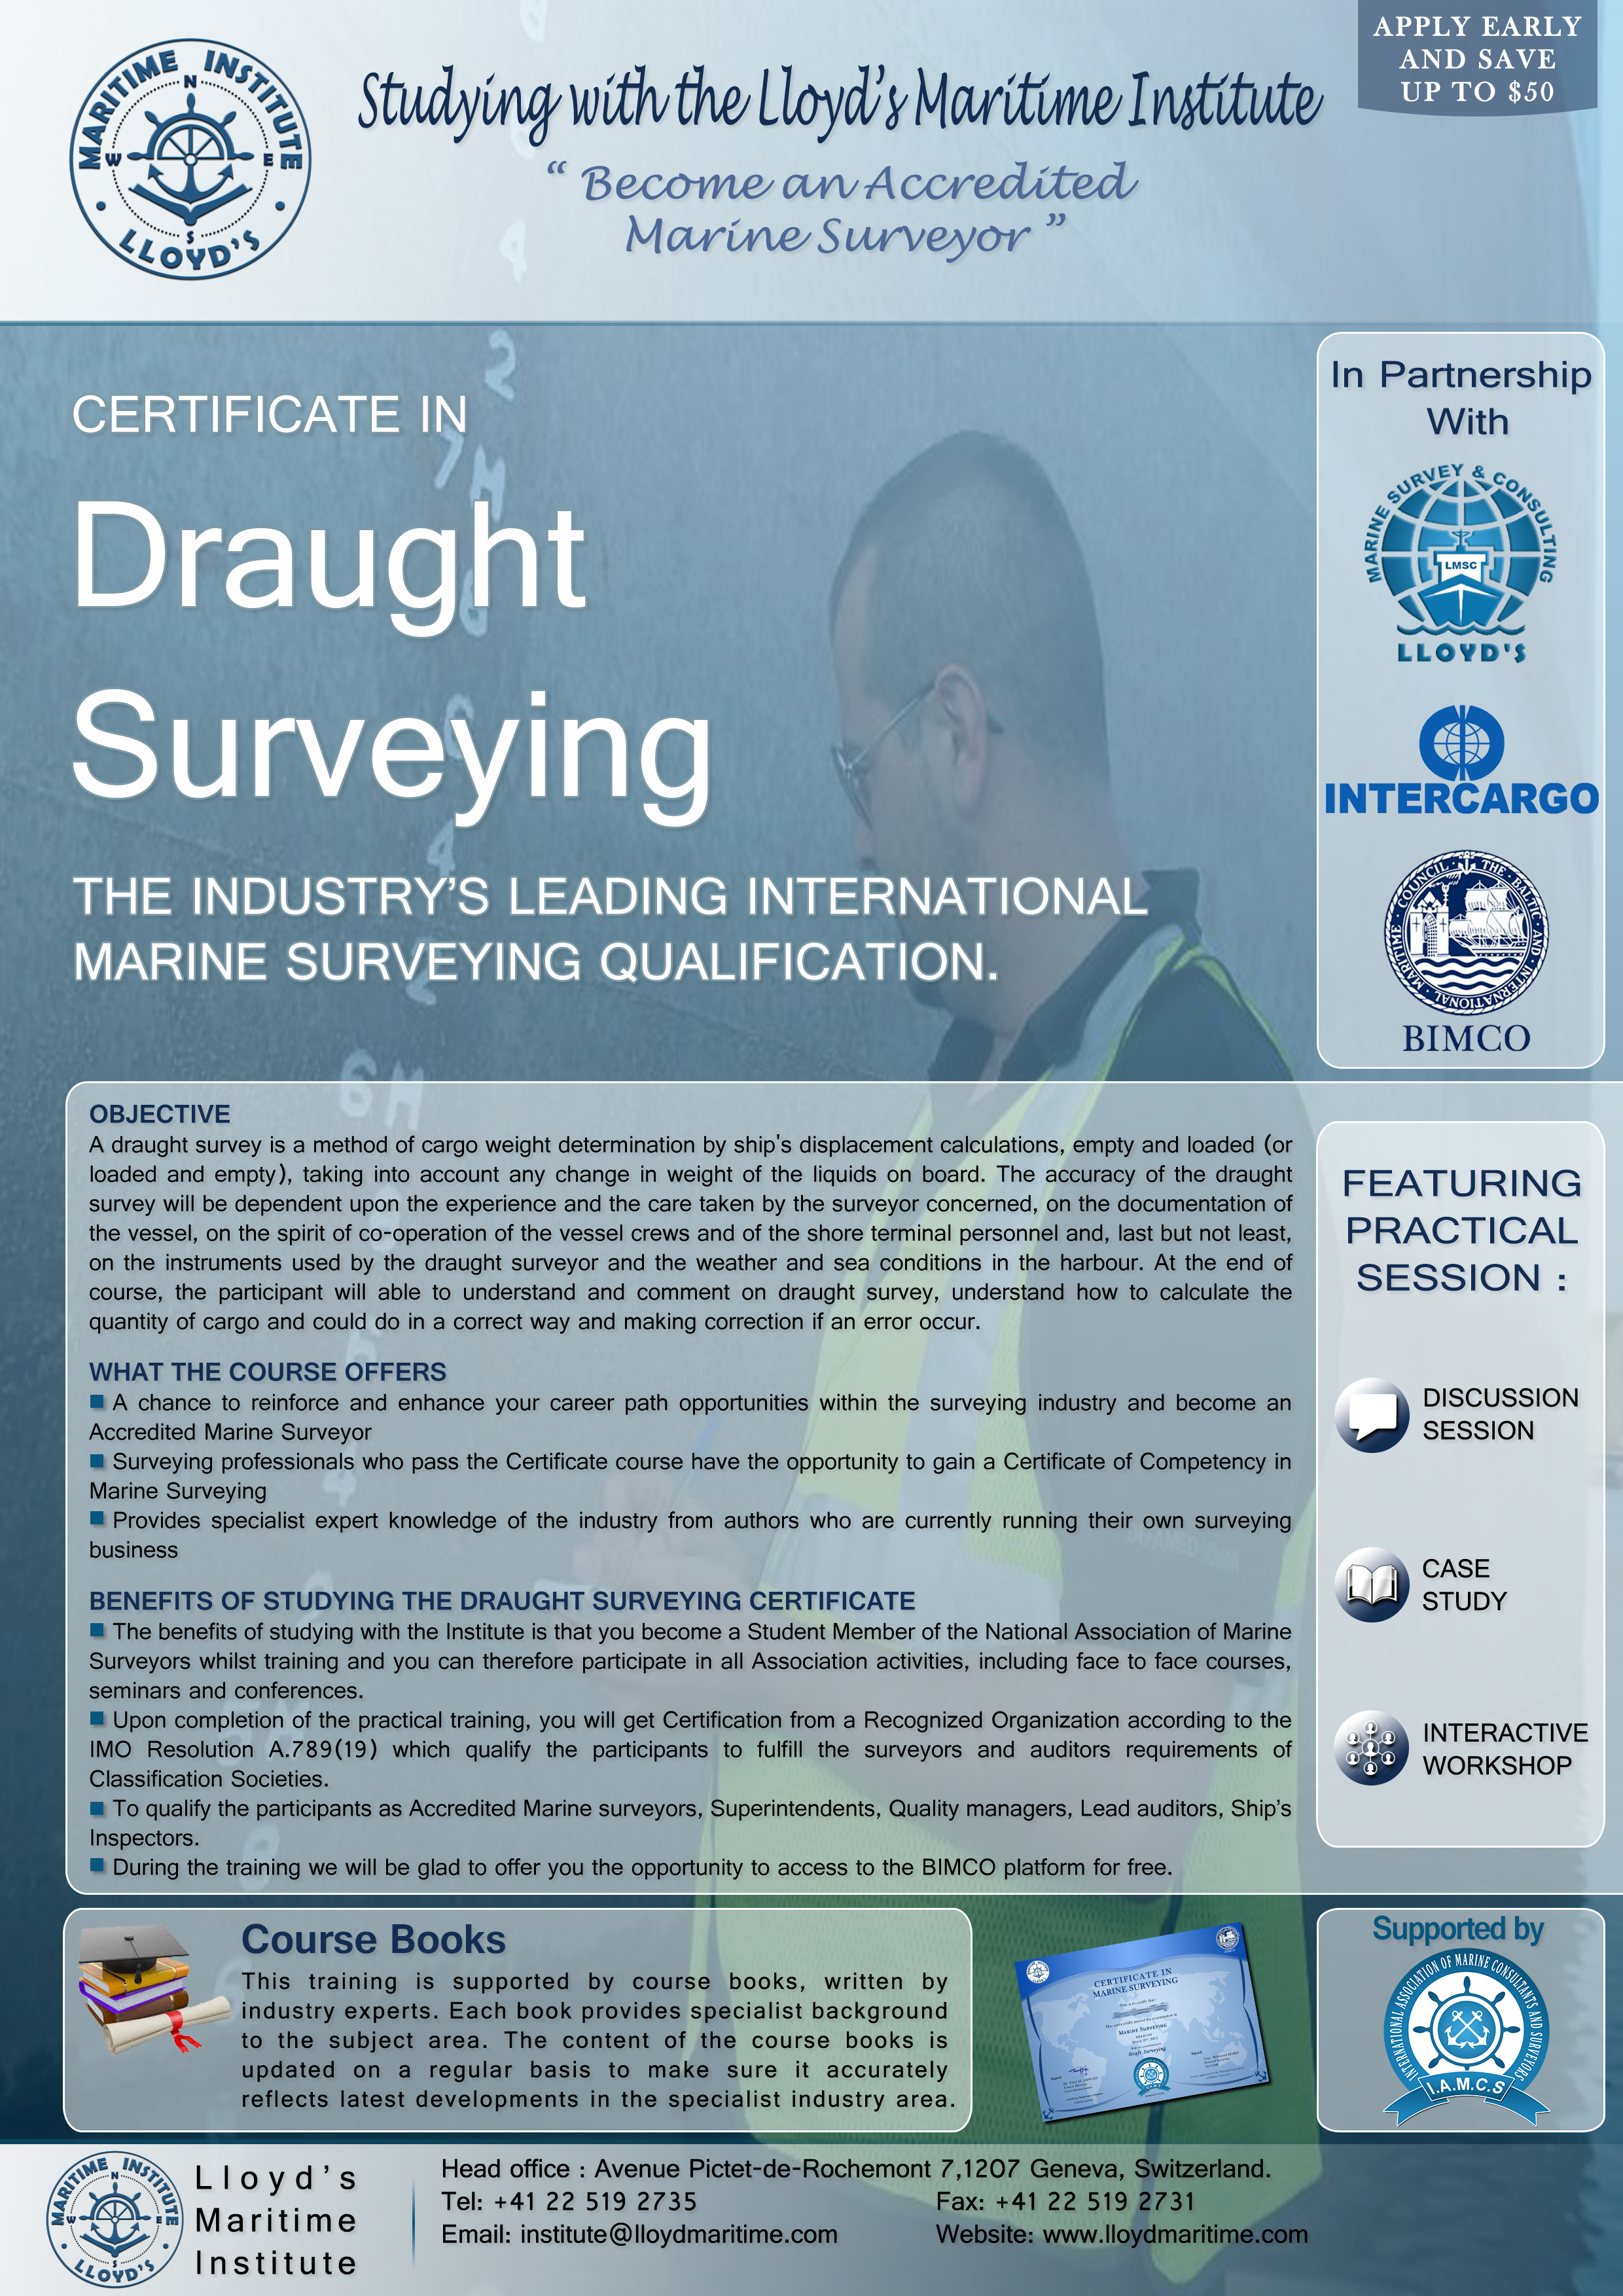 Draught Surveying Training Course